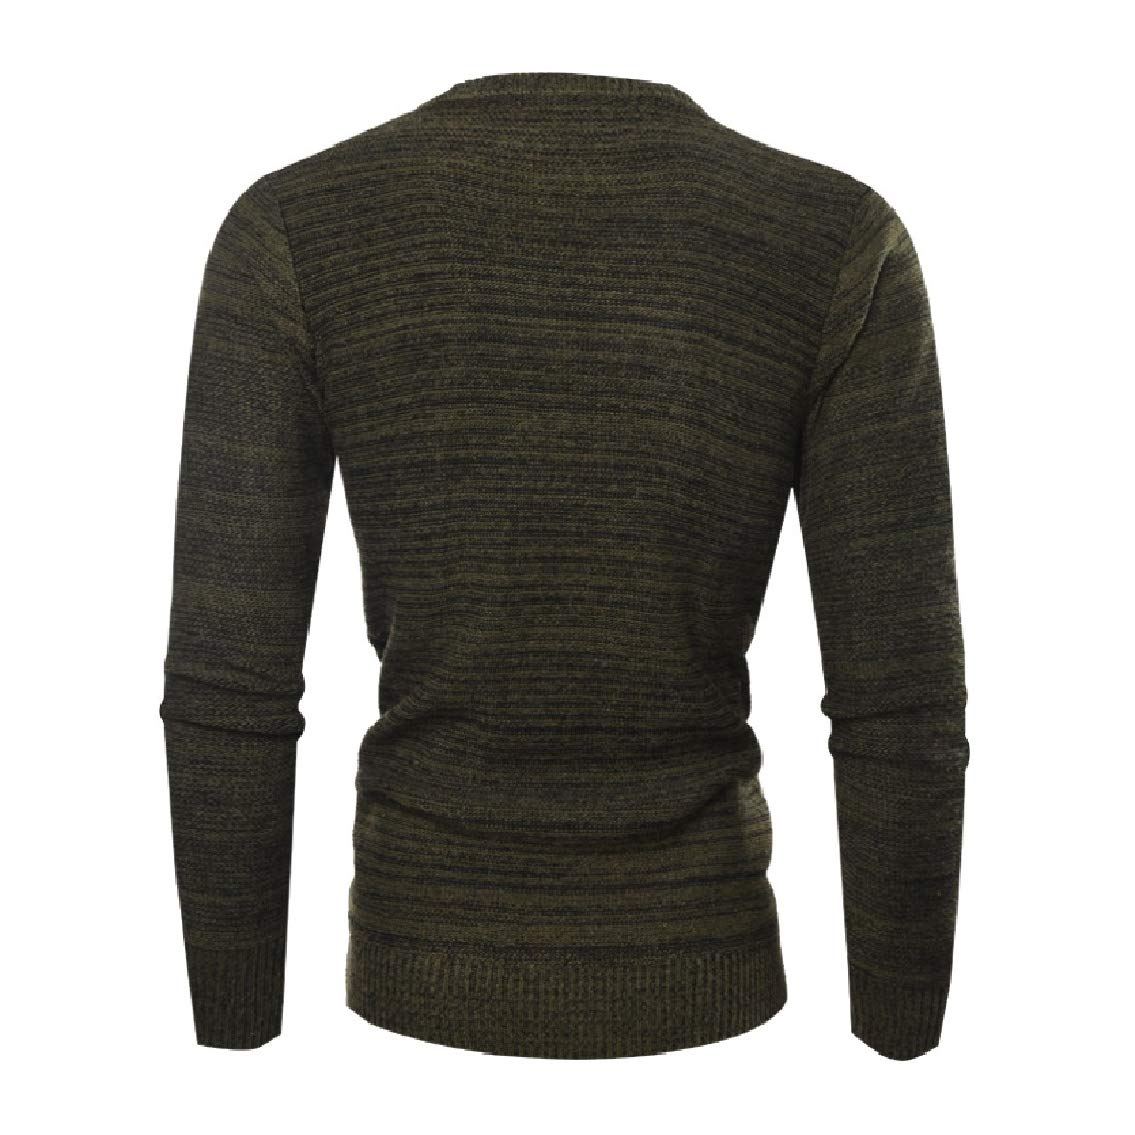 Freely Mens Crewneck Pullover Simple Jacquard Knit Autumn Winter Sweaters